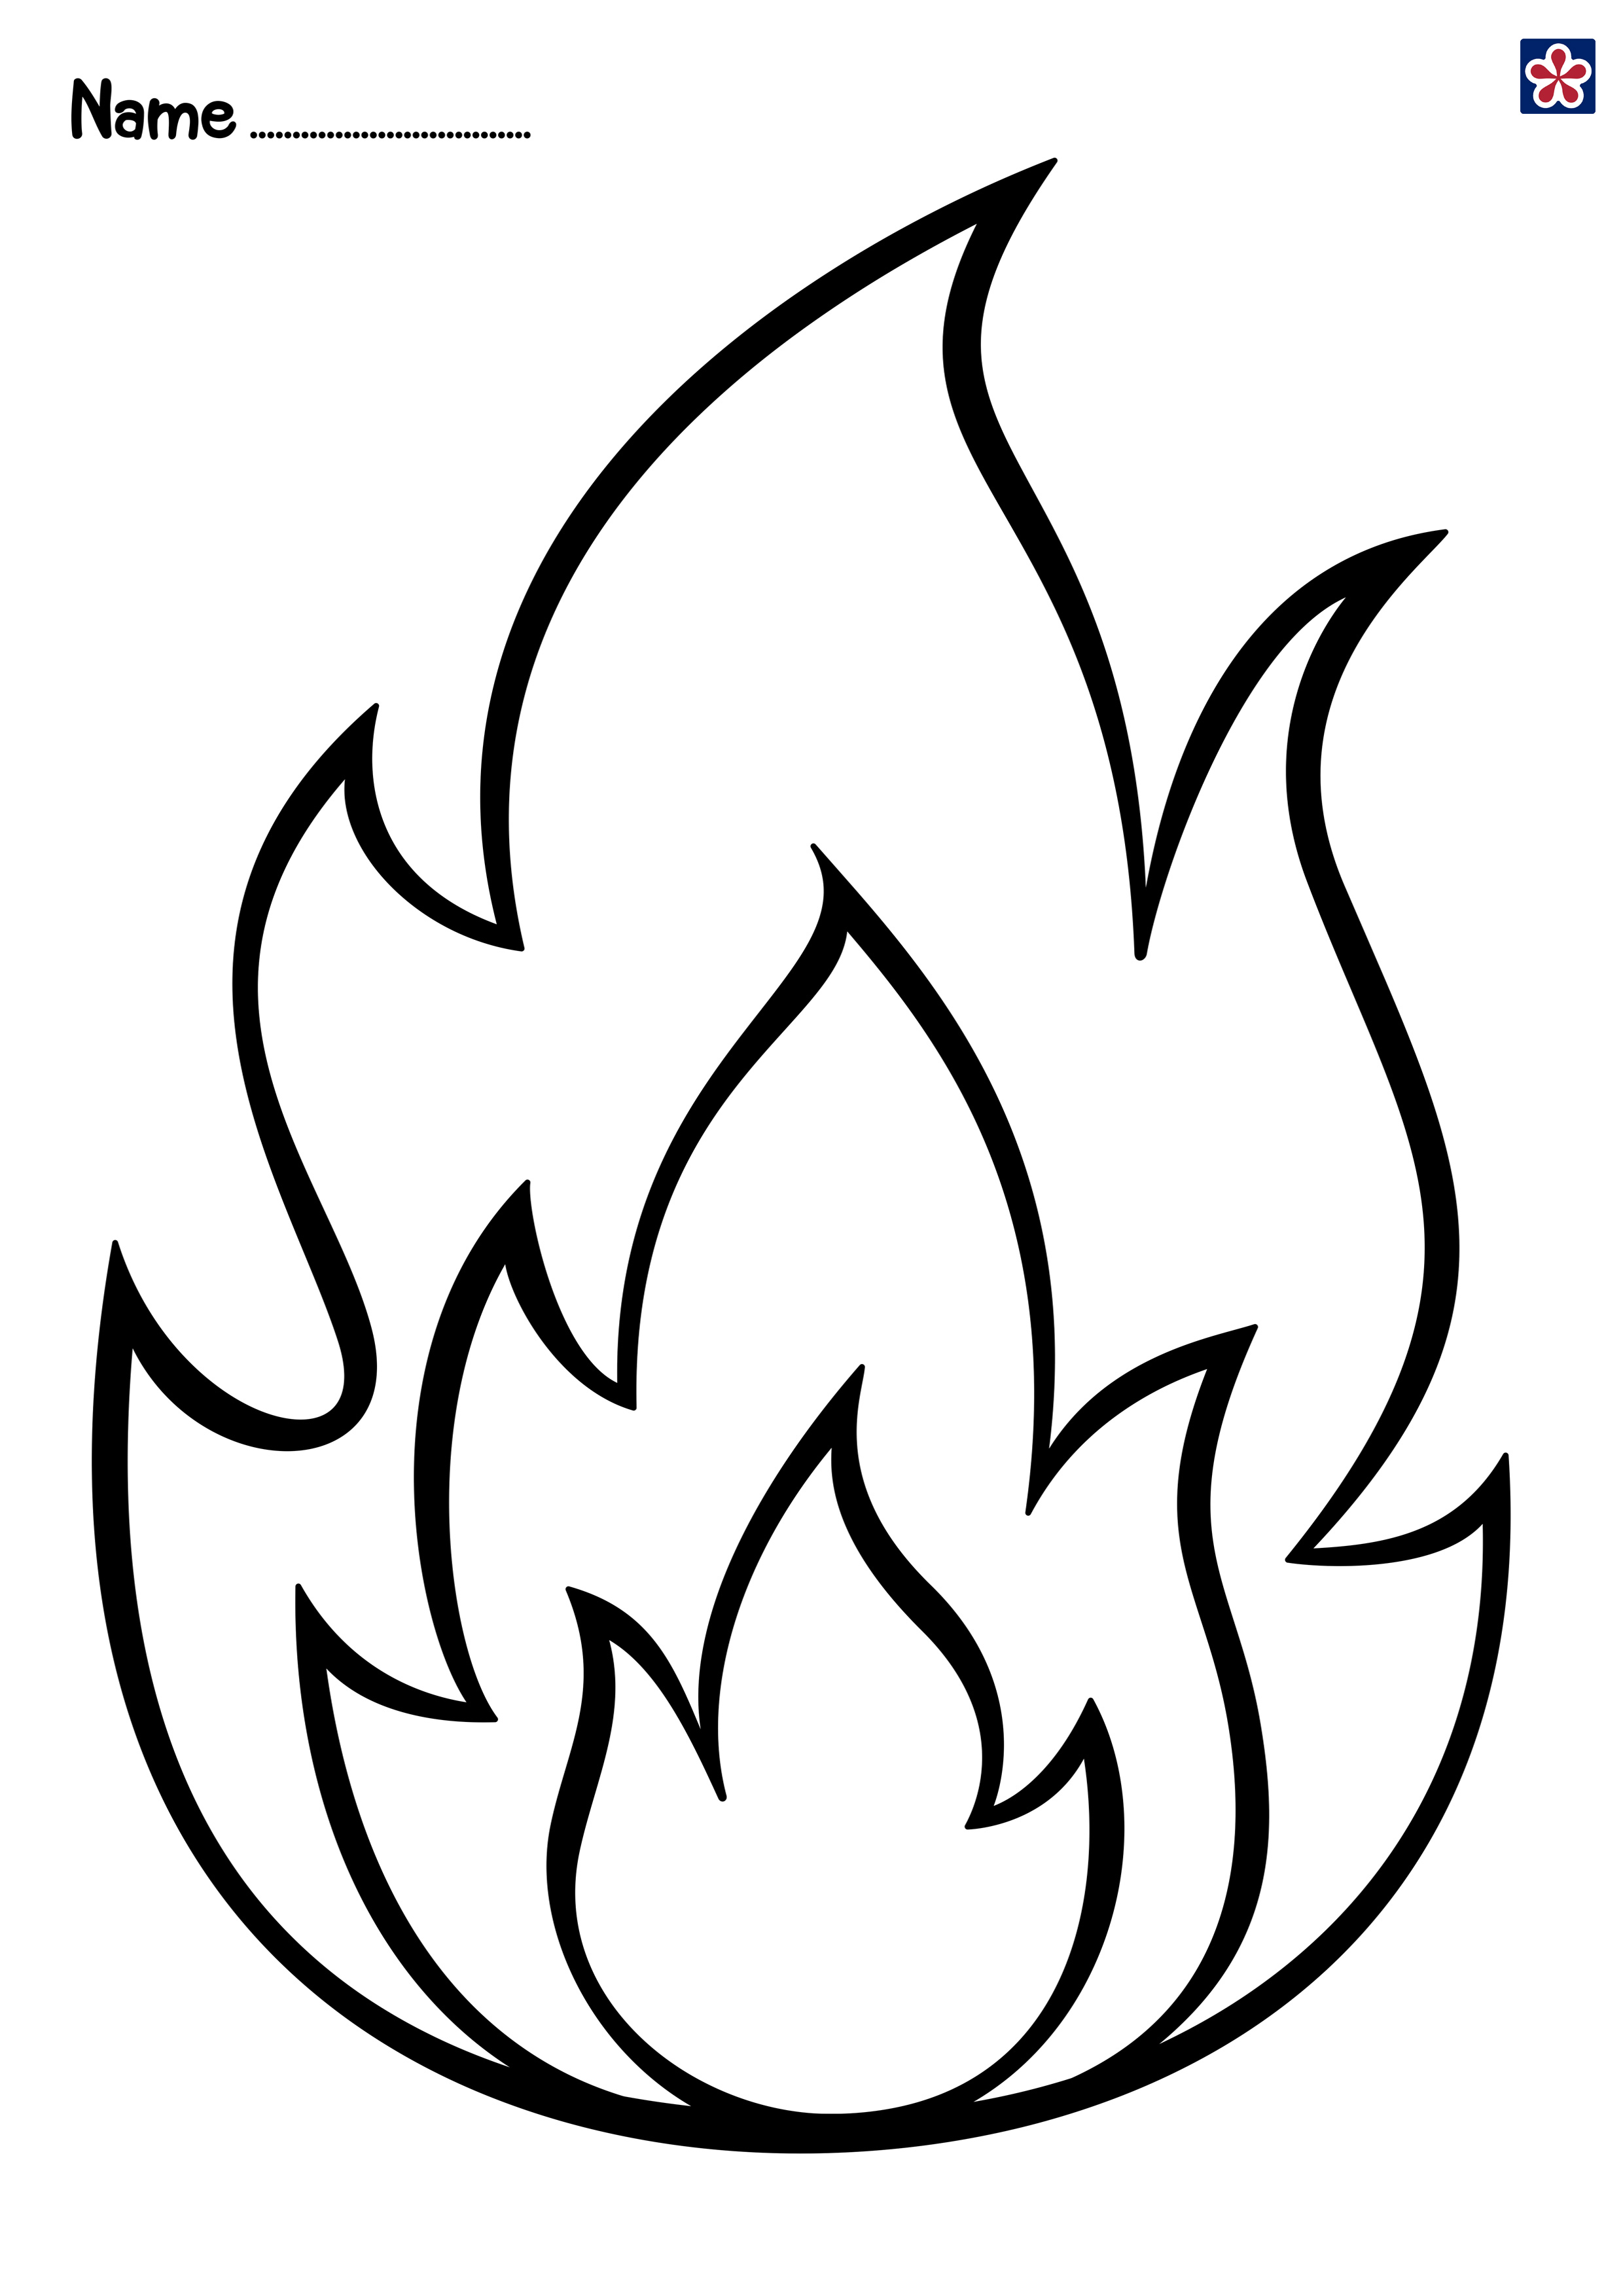 fire coloring page fire design drawing at getdrawings free download page fire coloring